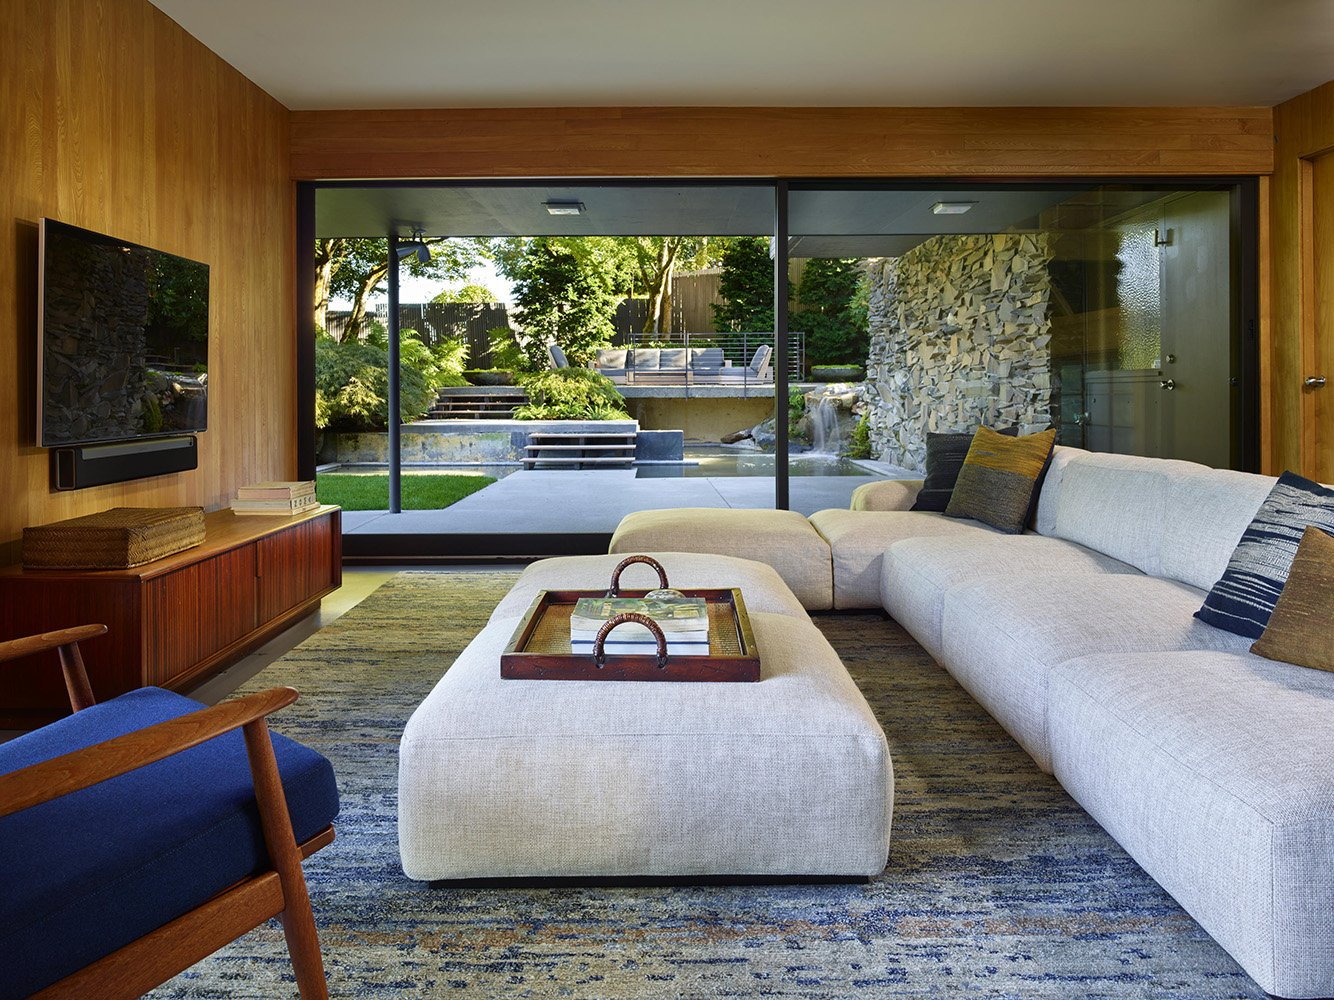 Lower level family room windows frame the restored landscape design by William Teufel